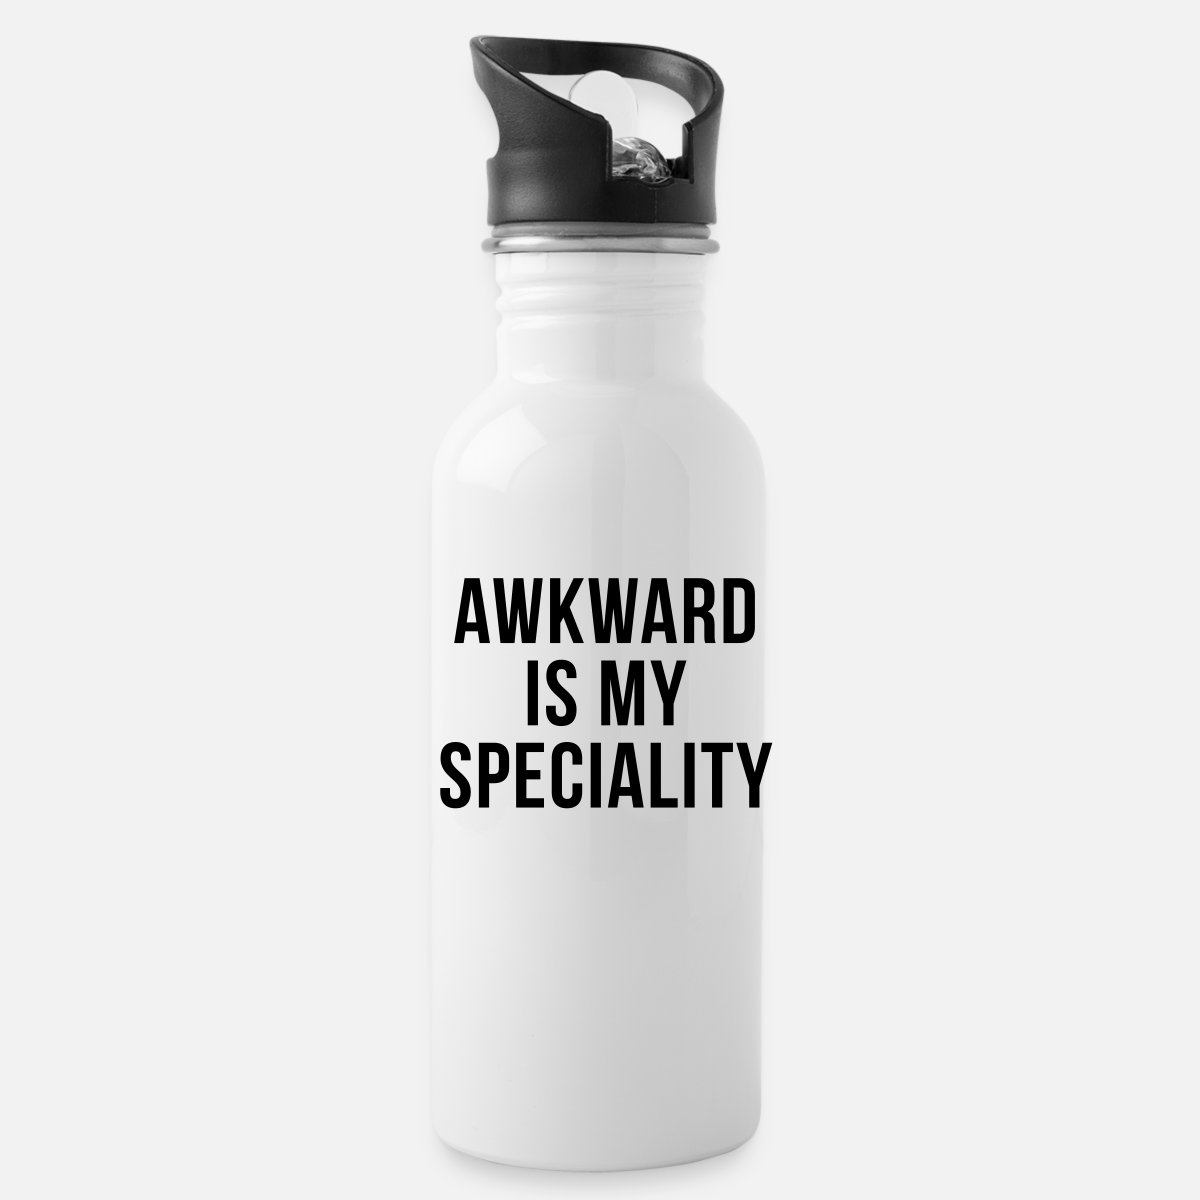 Awkward Specialty Funny Quote Water Bottle White